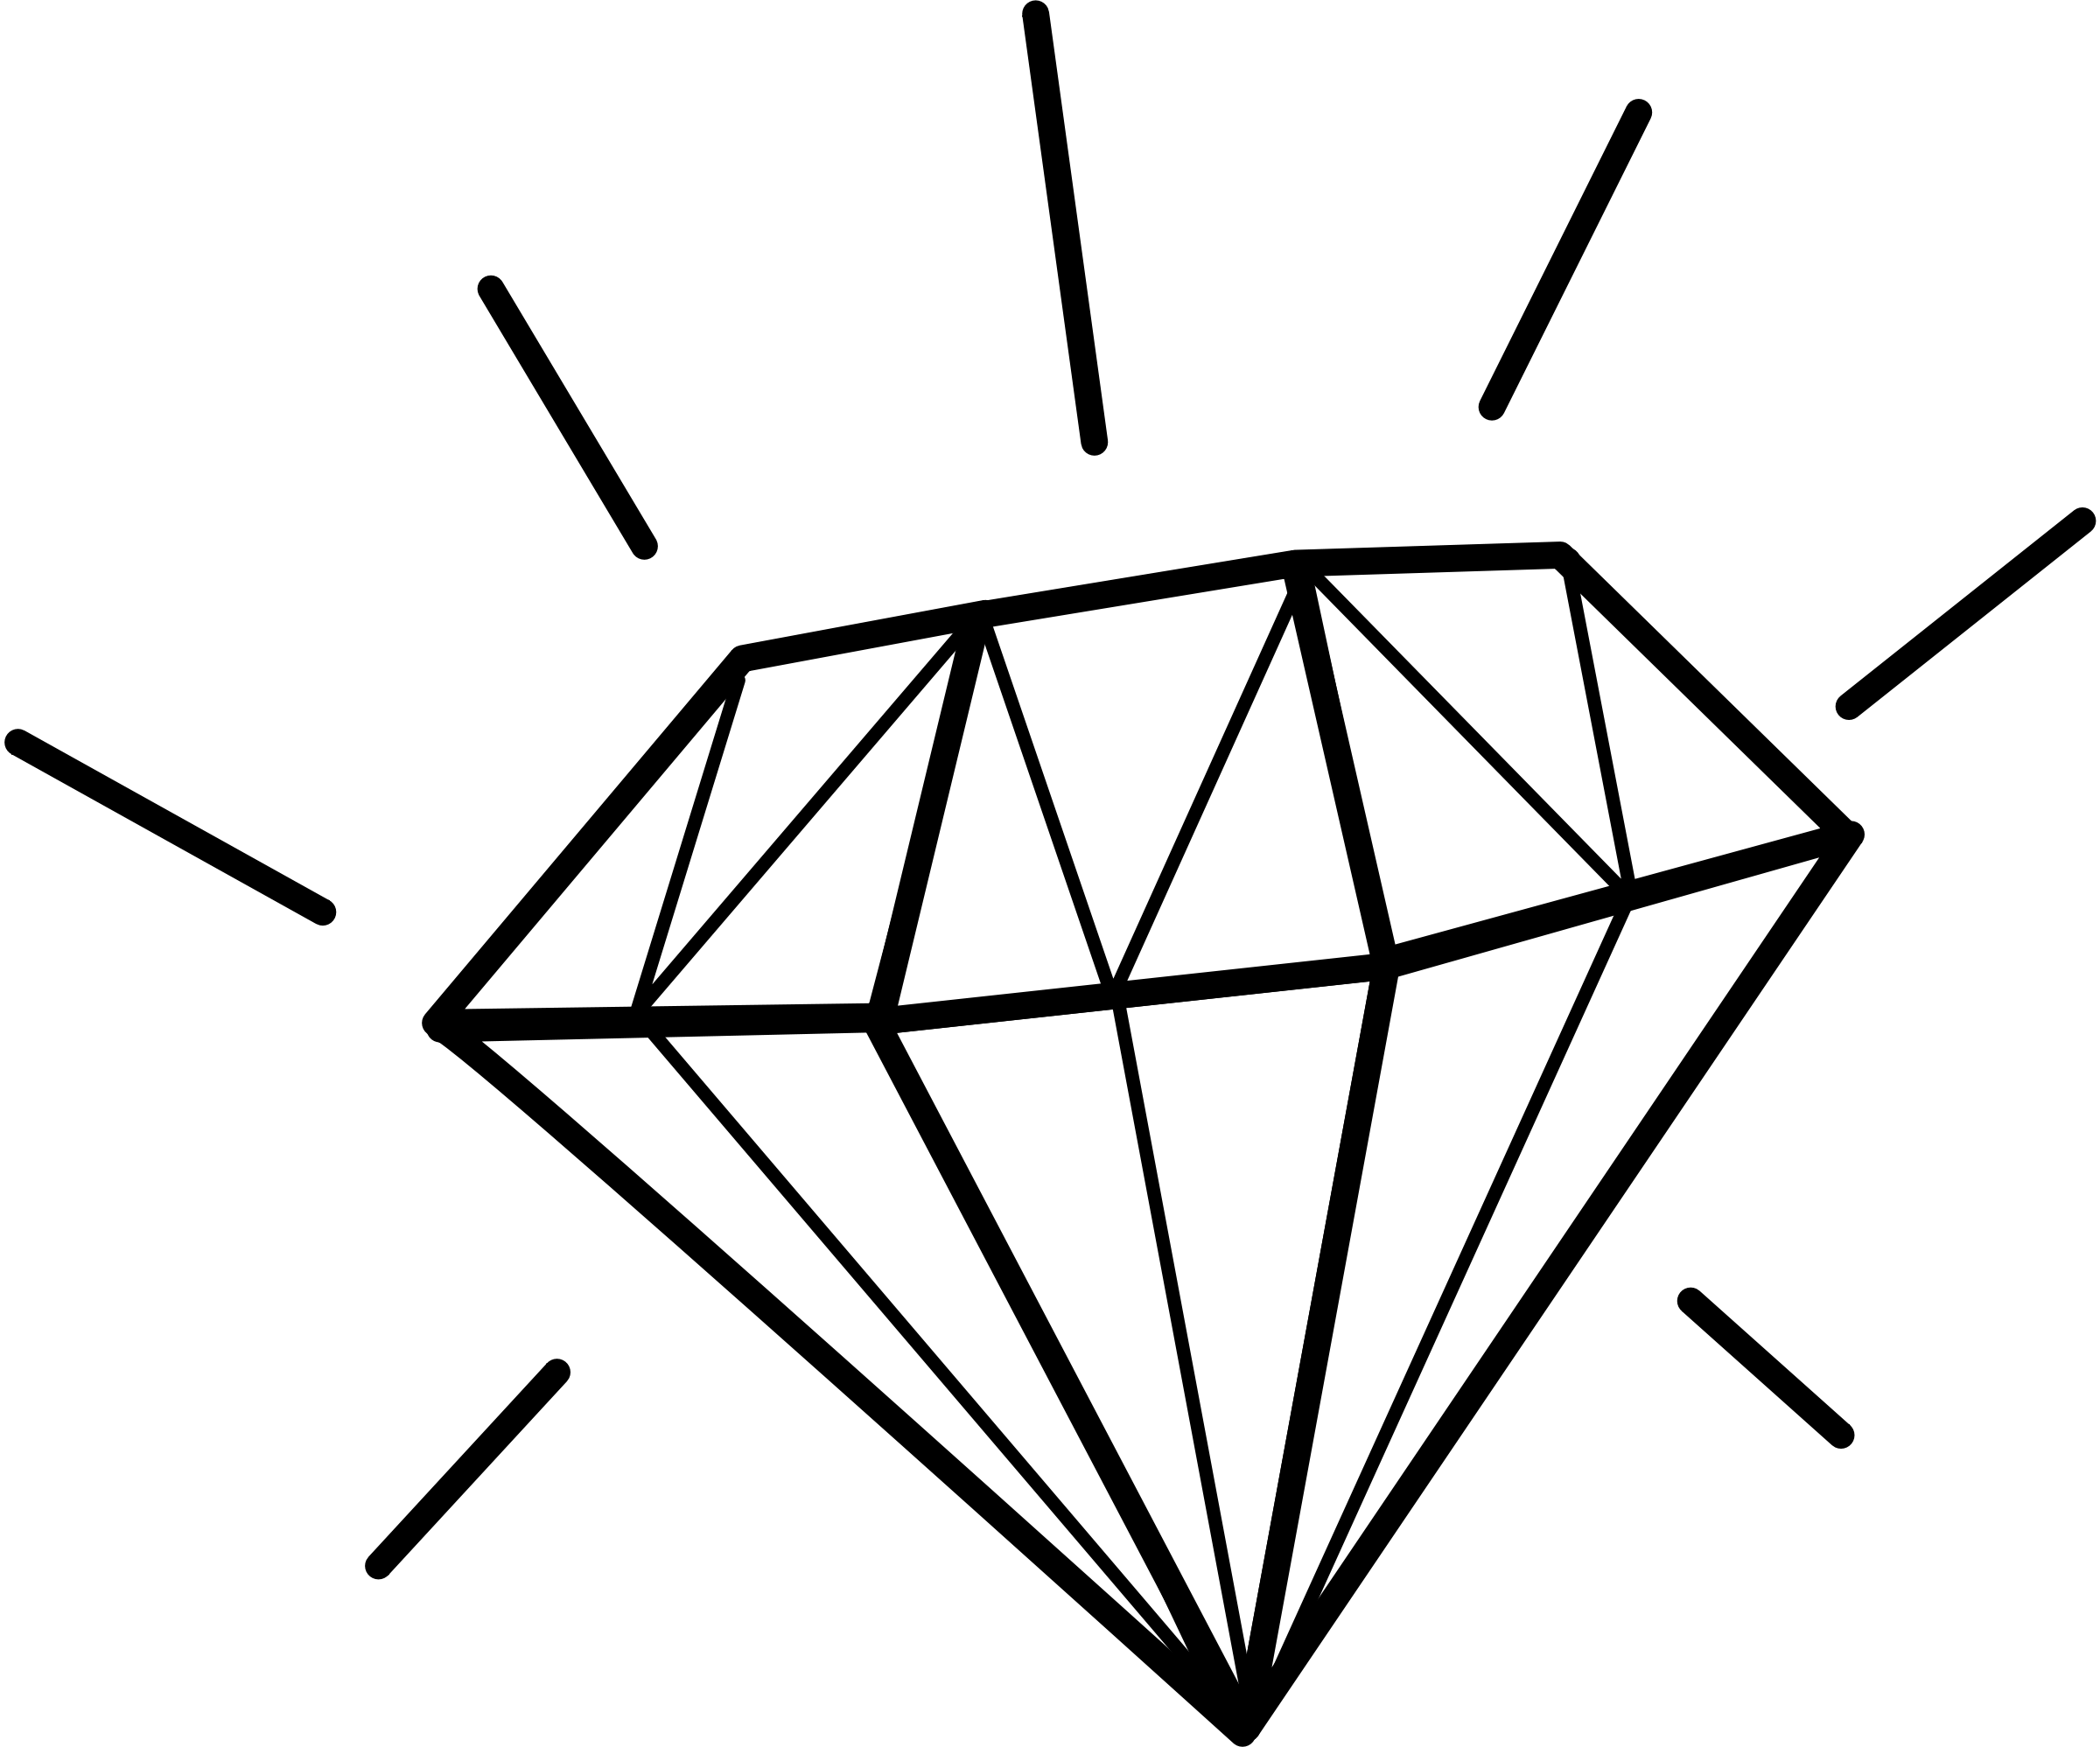 Diamond line clipart image freeuse download Diamond Line Art | Free download best Diamond Line Art on ClipArtMag.com image freeuse download